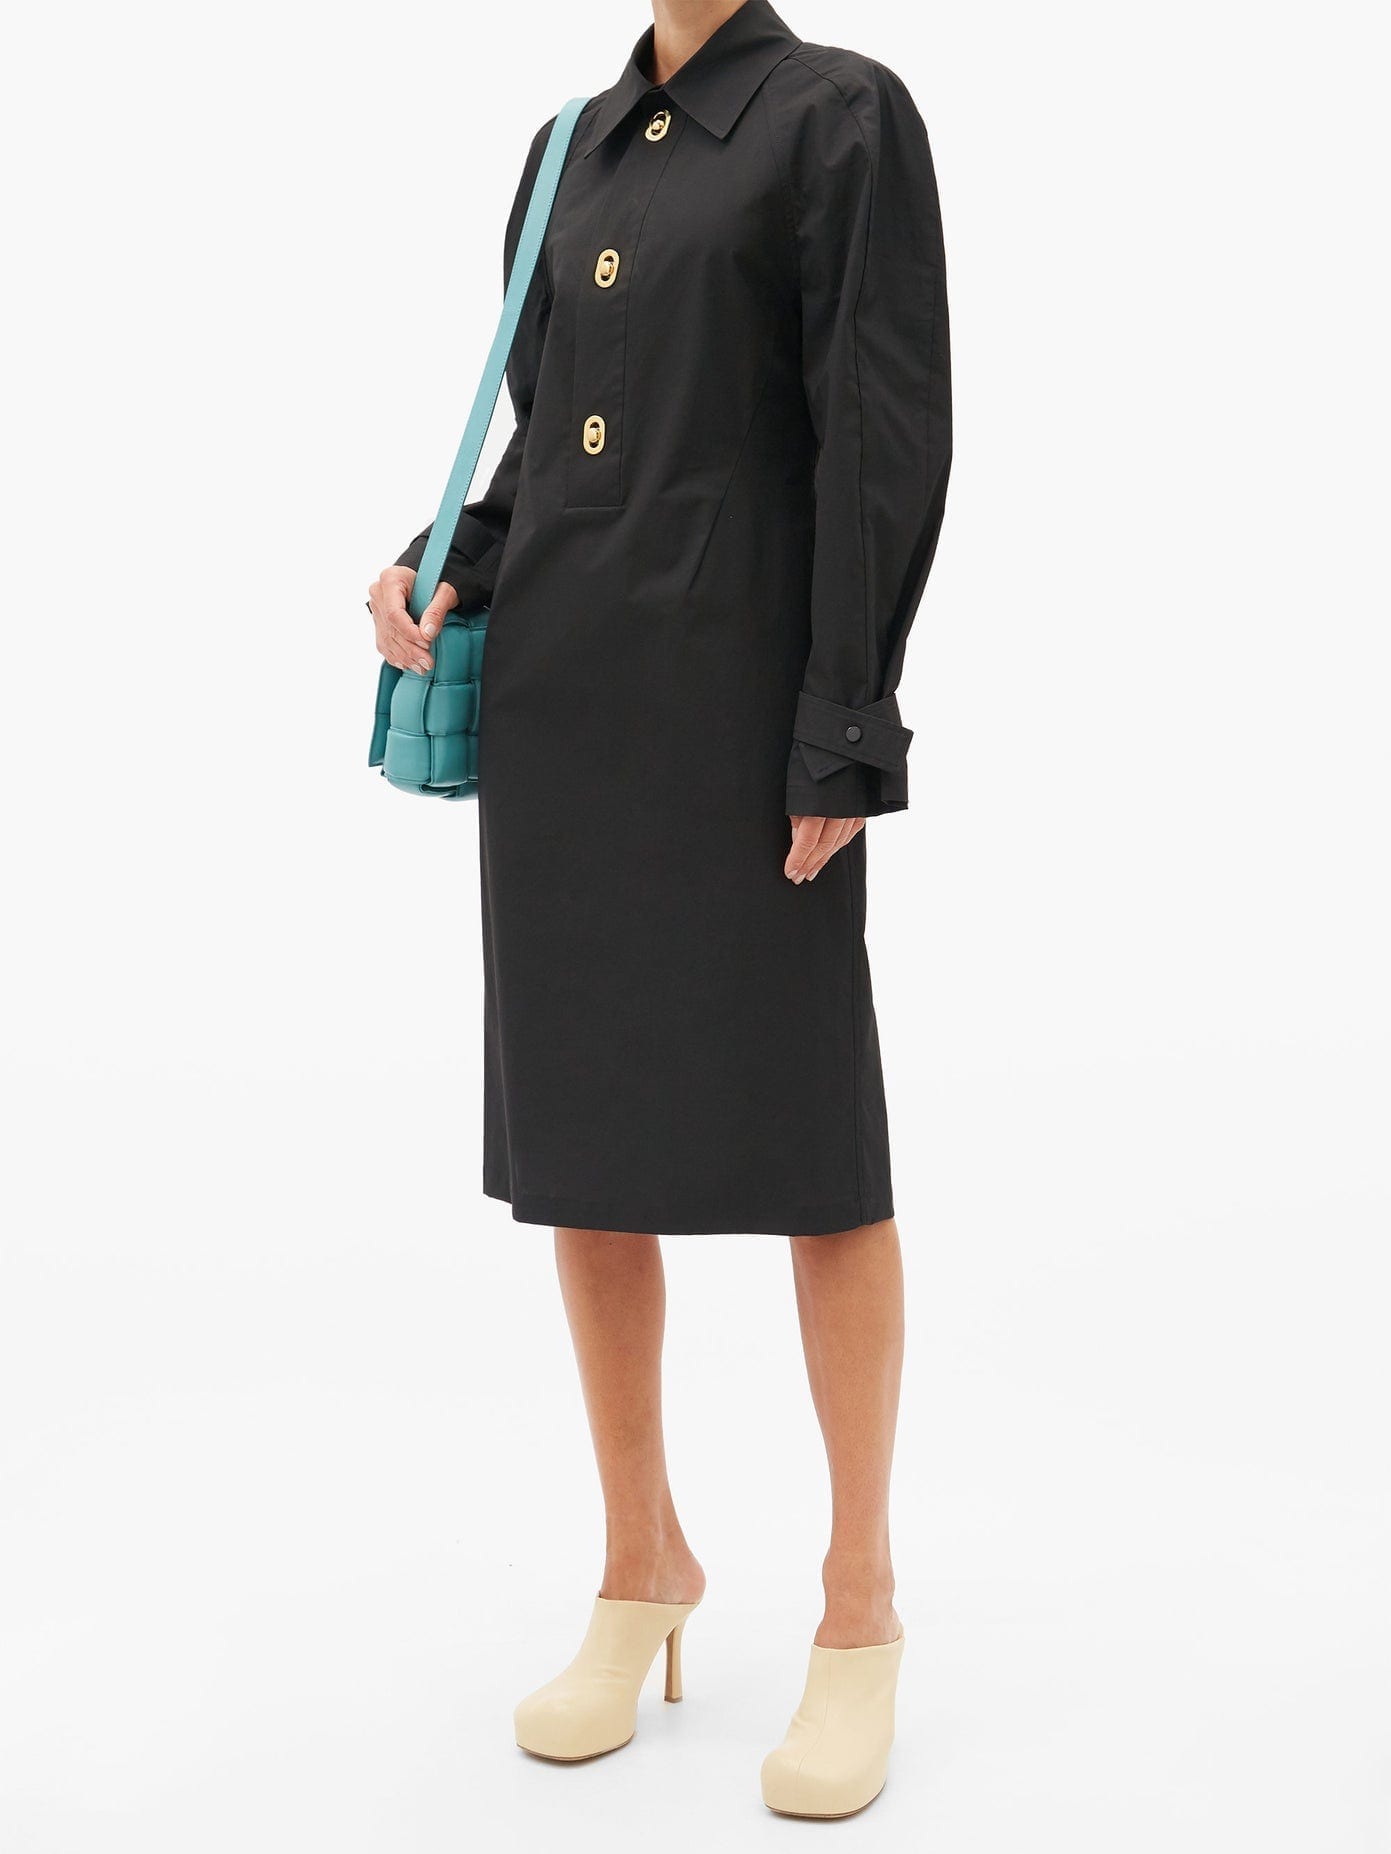 BOTTEGA VENETA Half-placket Coated-canvas Midi Dress